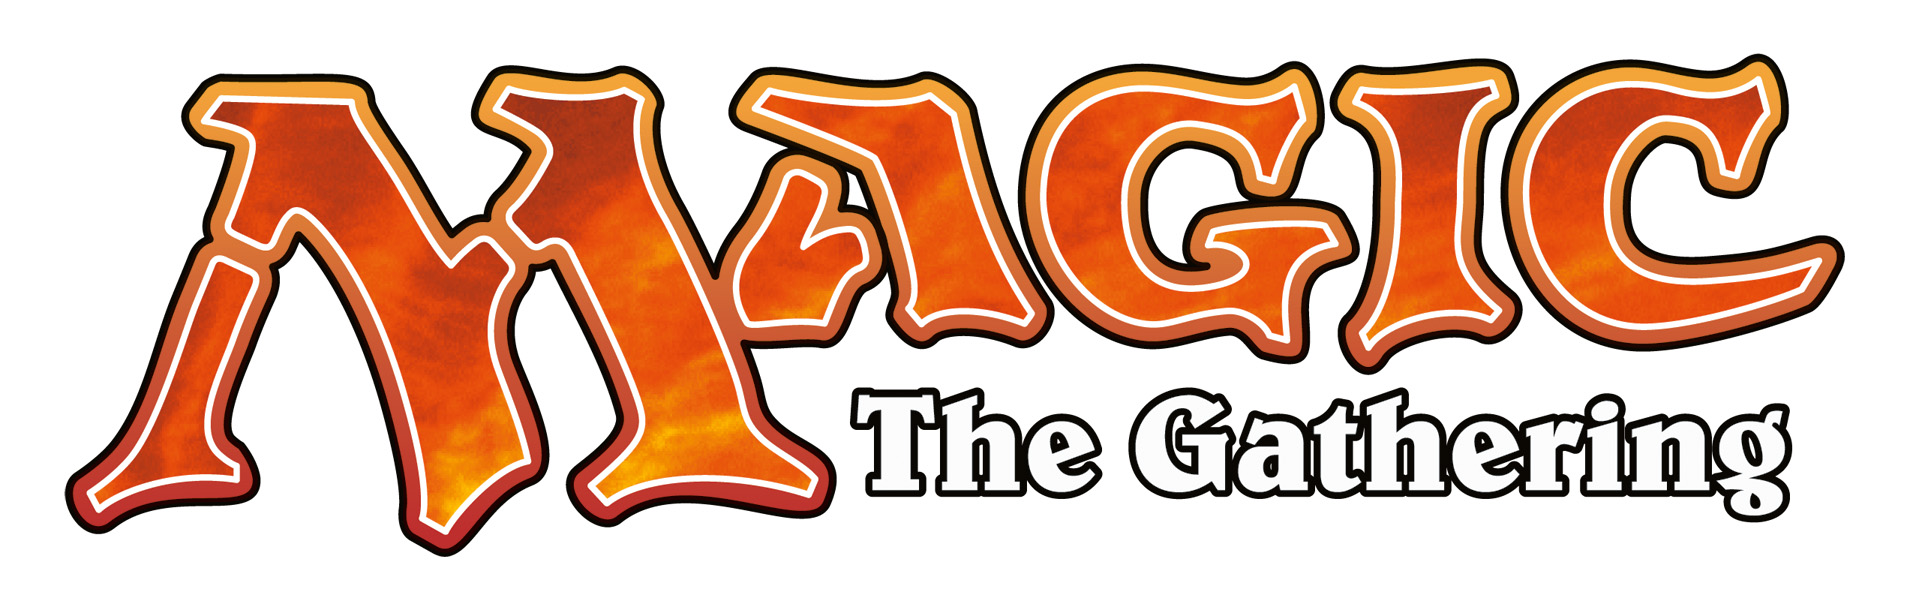 Magic: The Gathering clipart #11, Download drawings